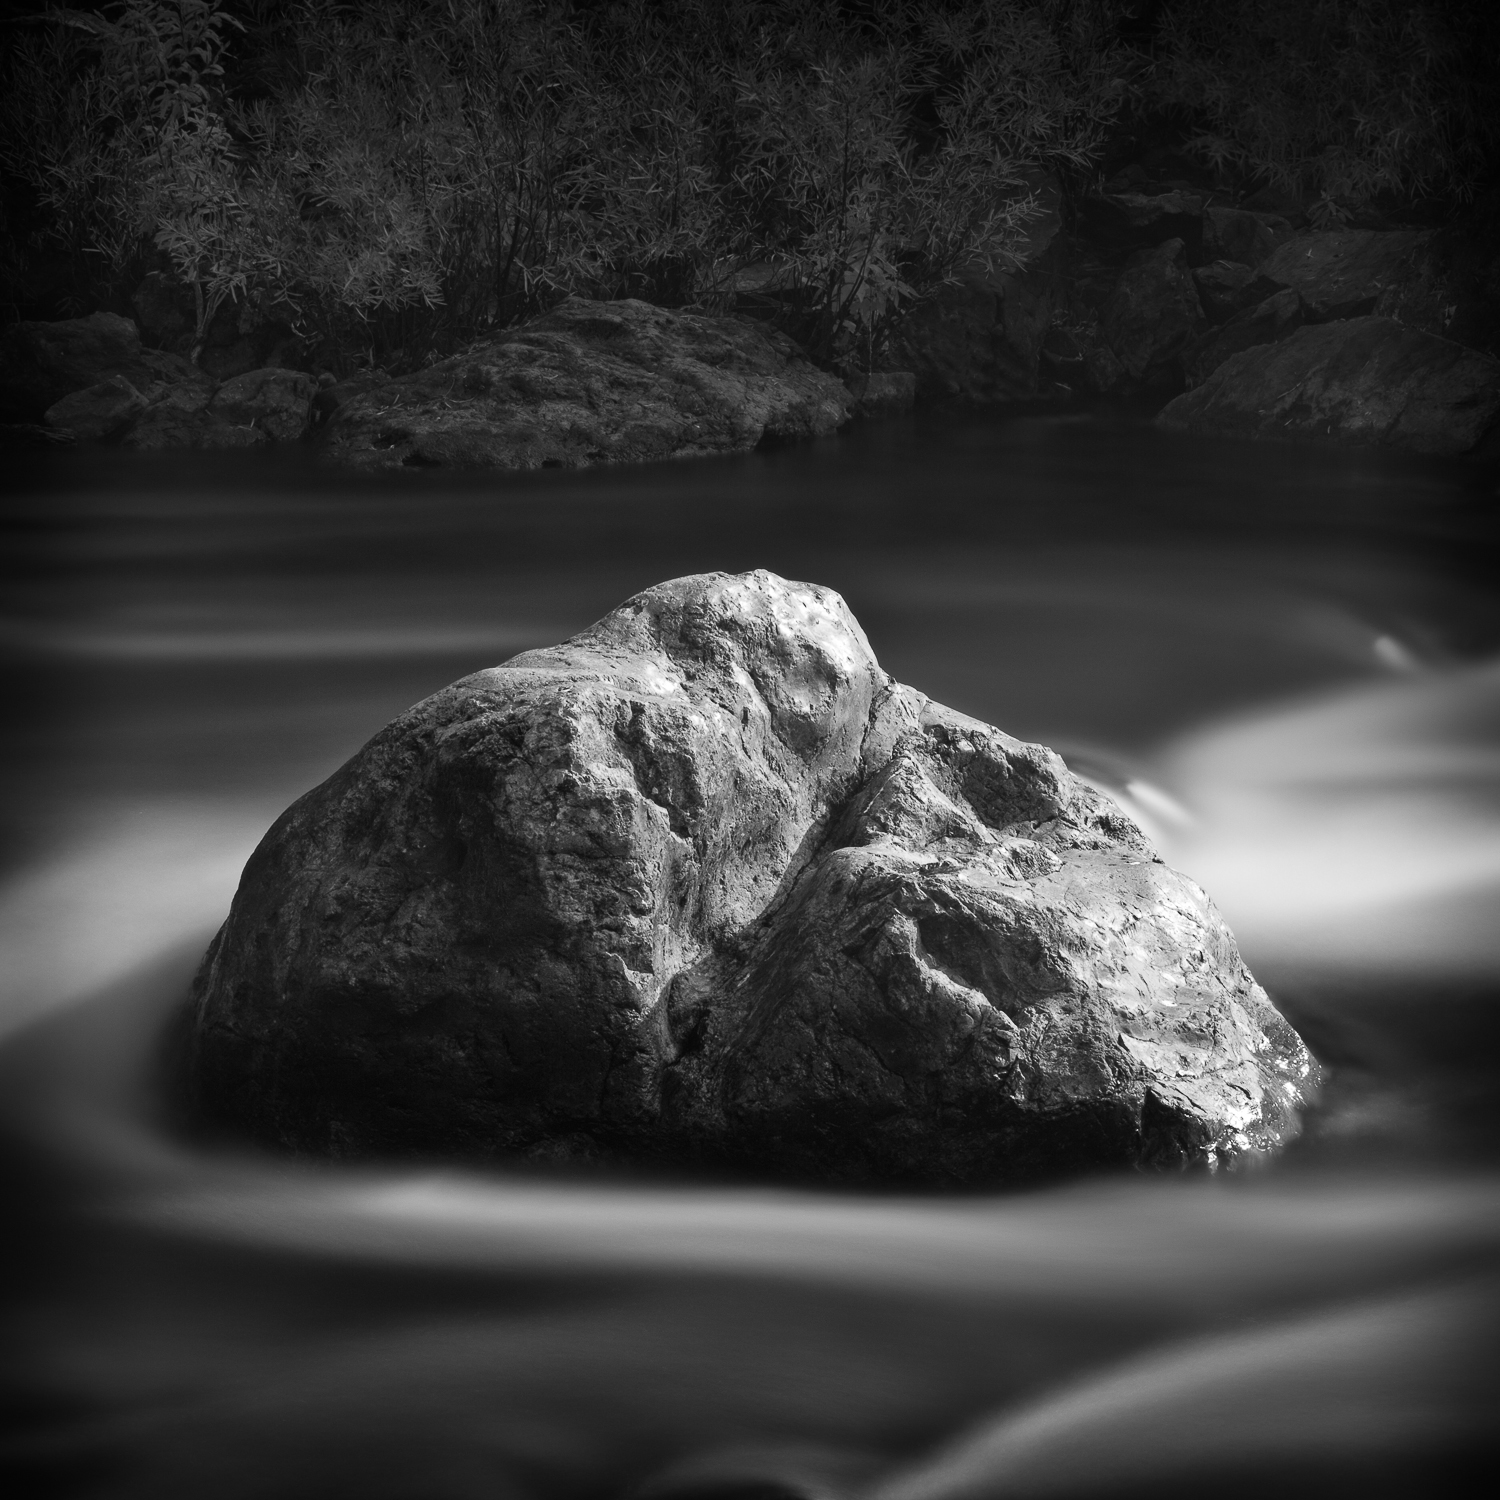 Boulder, North Fork American River, Placer County, California